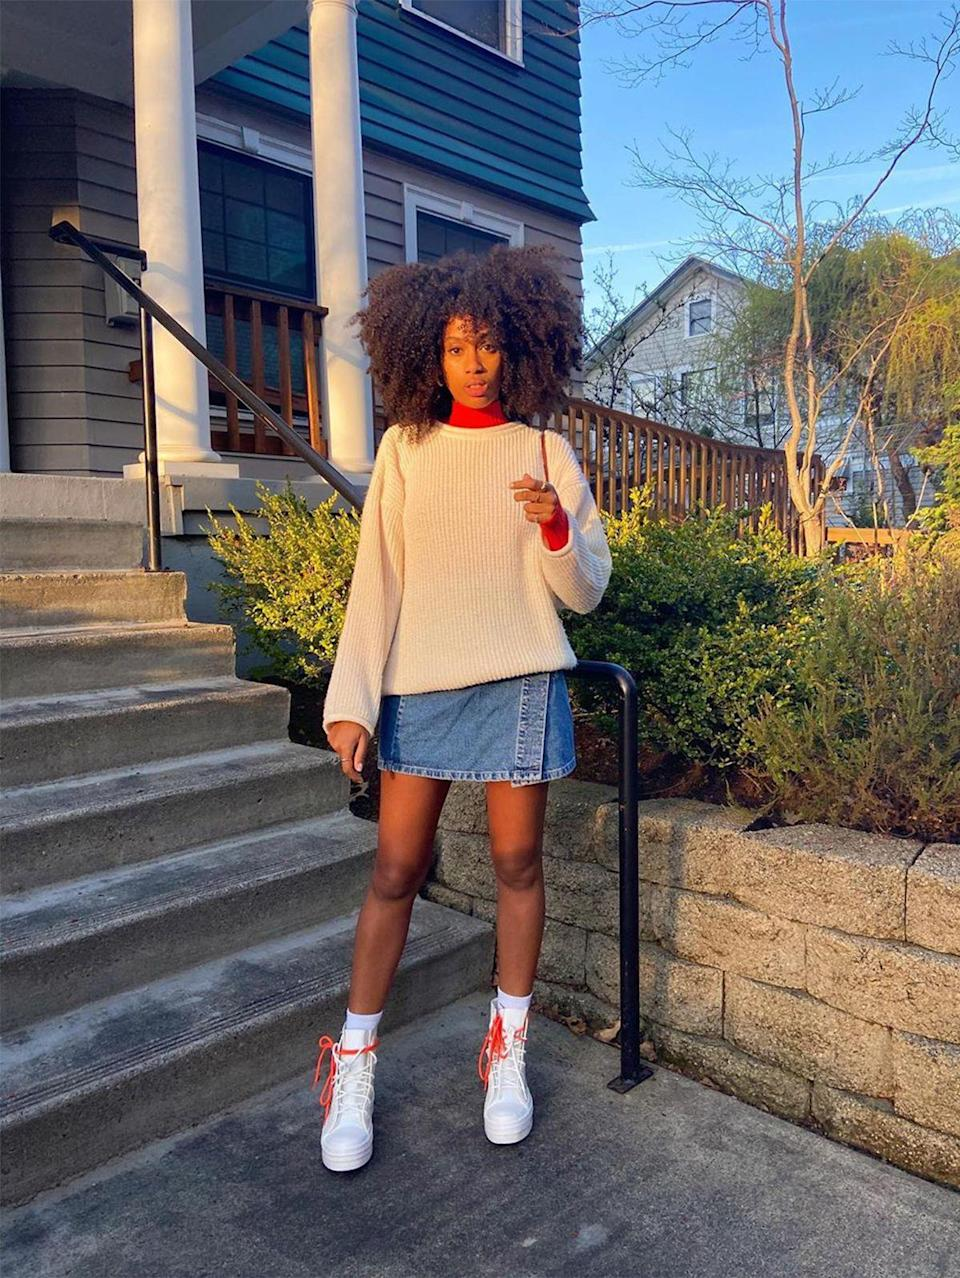 20 Skirts That Look Good With Just a Plain T-Shirt